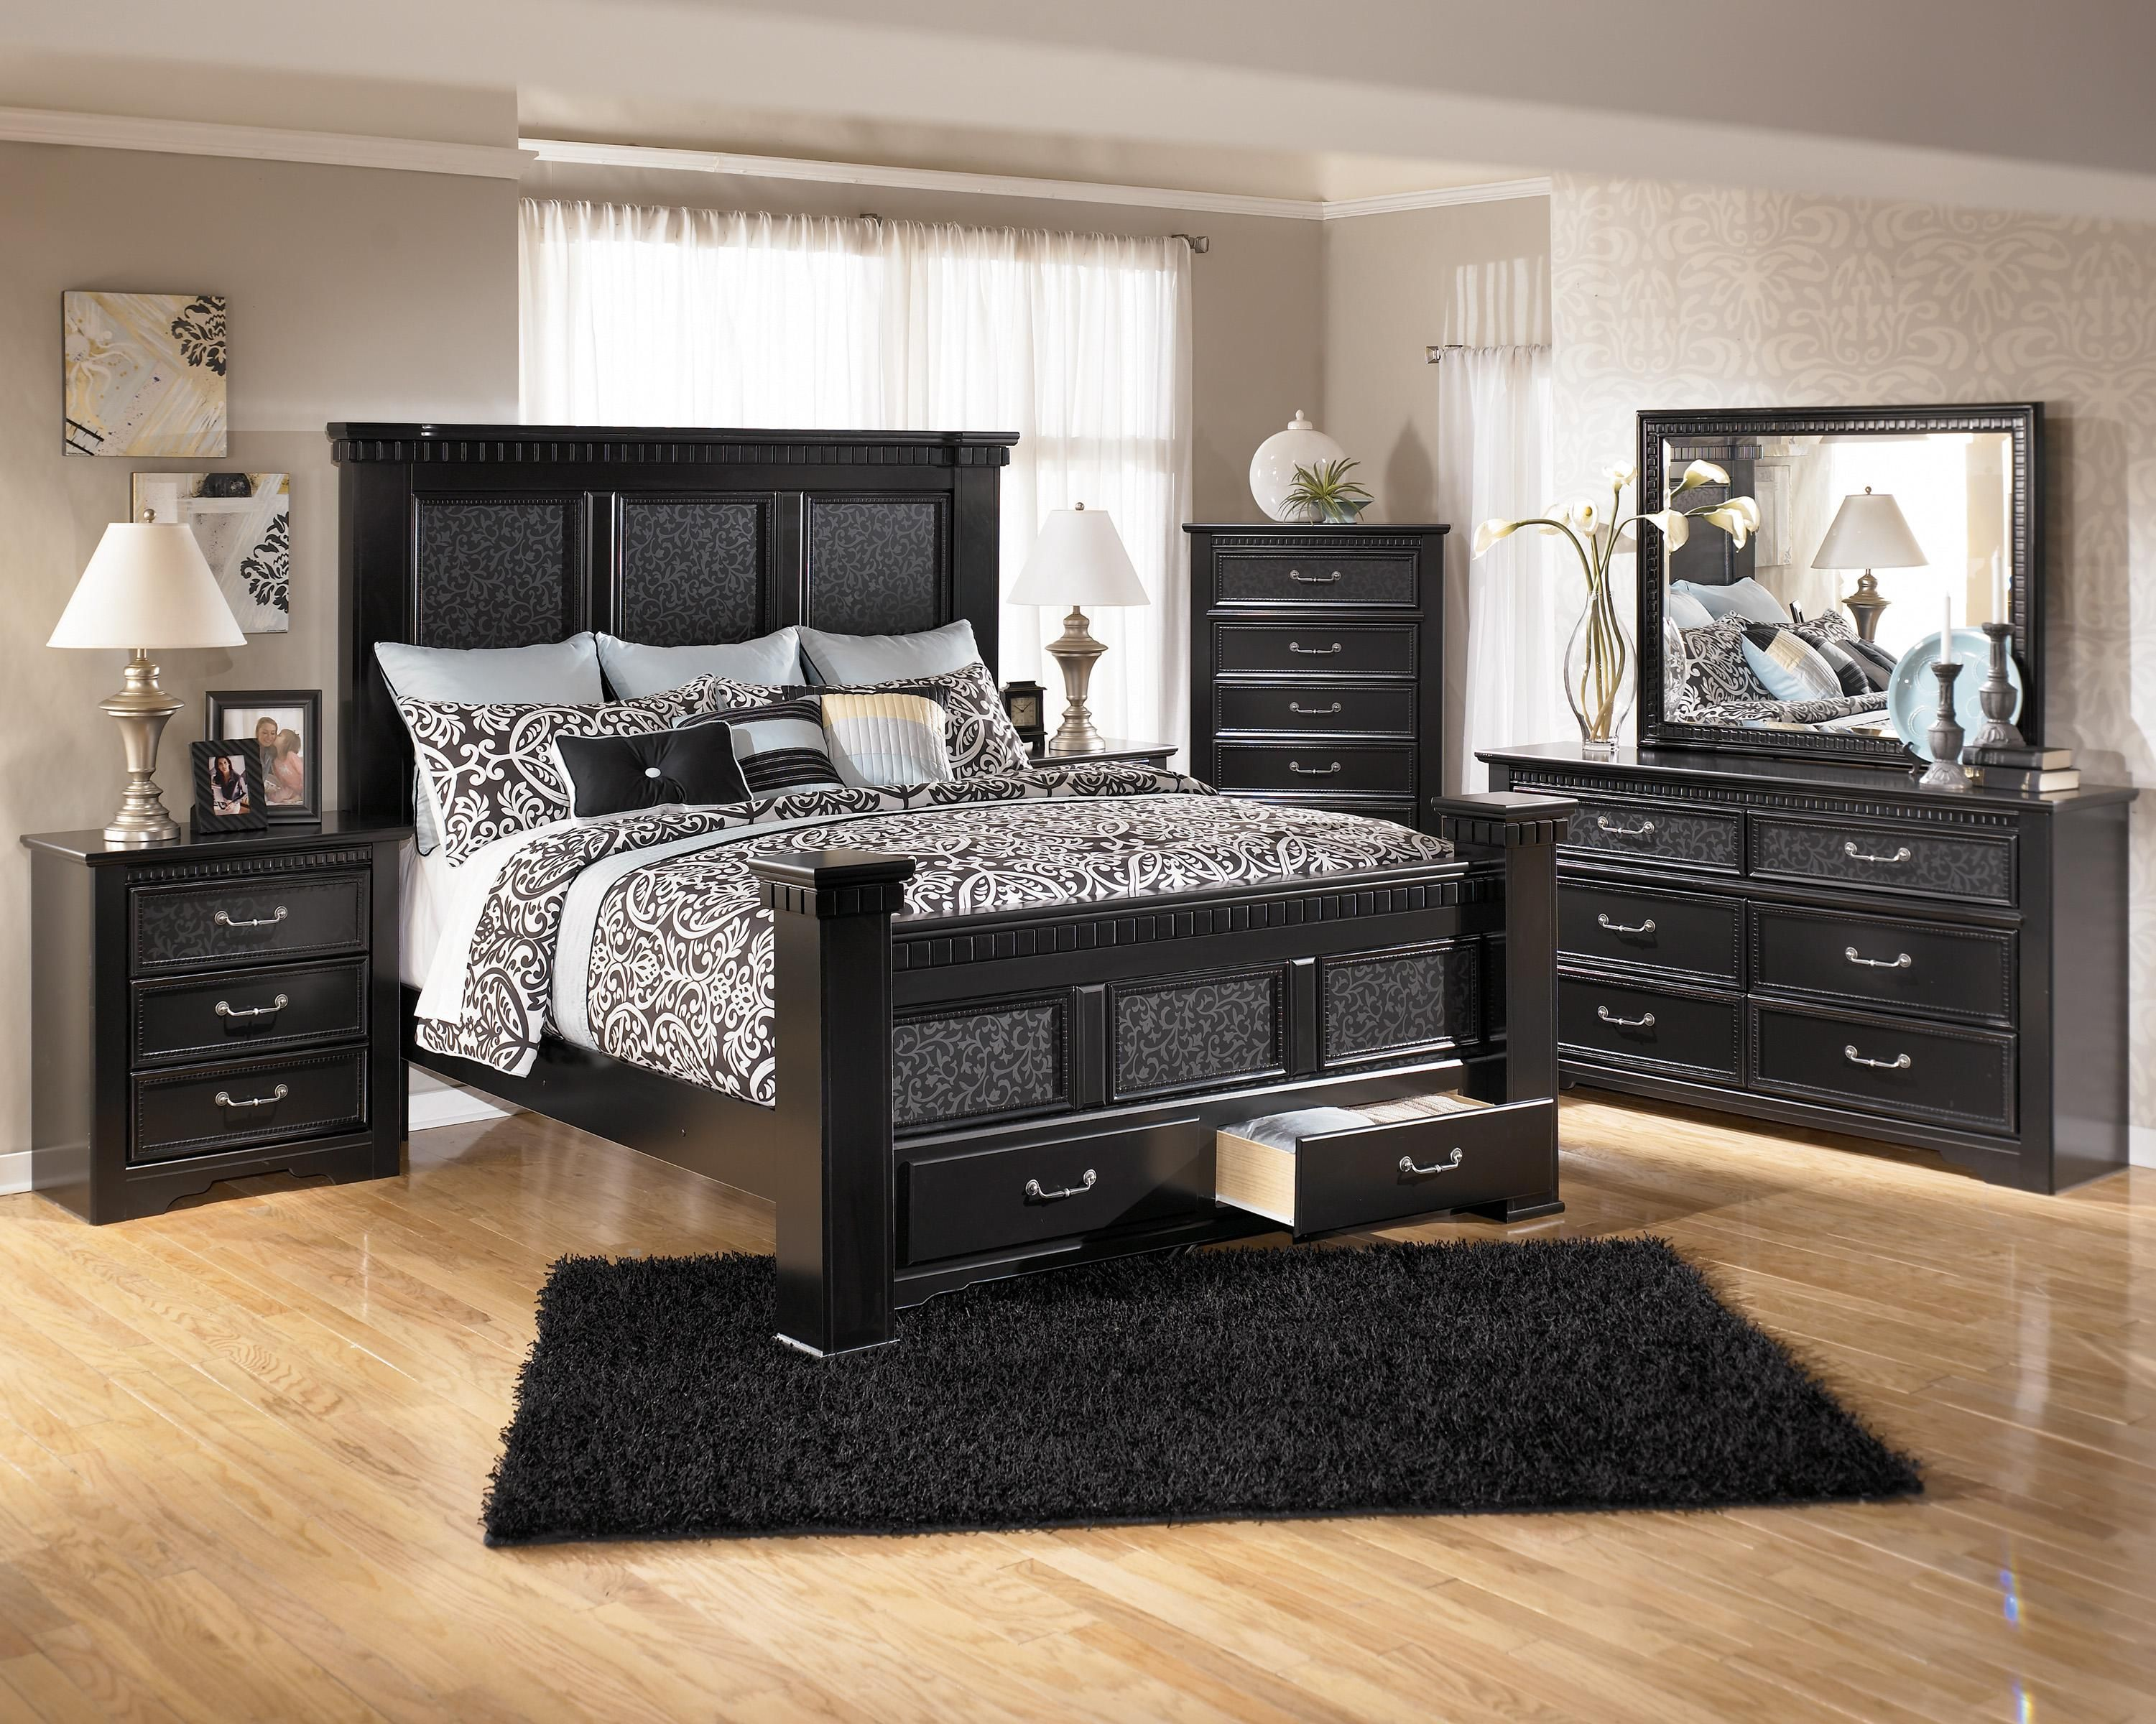 Living Room And Bedroom Furniture Sets 25 Best Ideas About Bedroom Furniture Sets On Pinterest Master